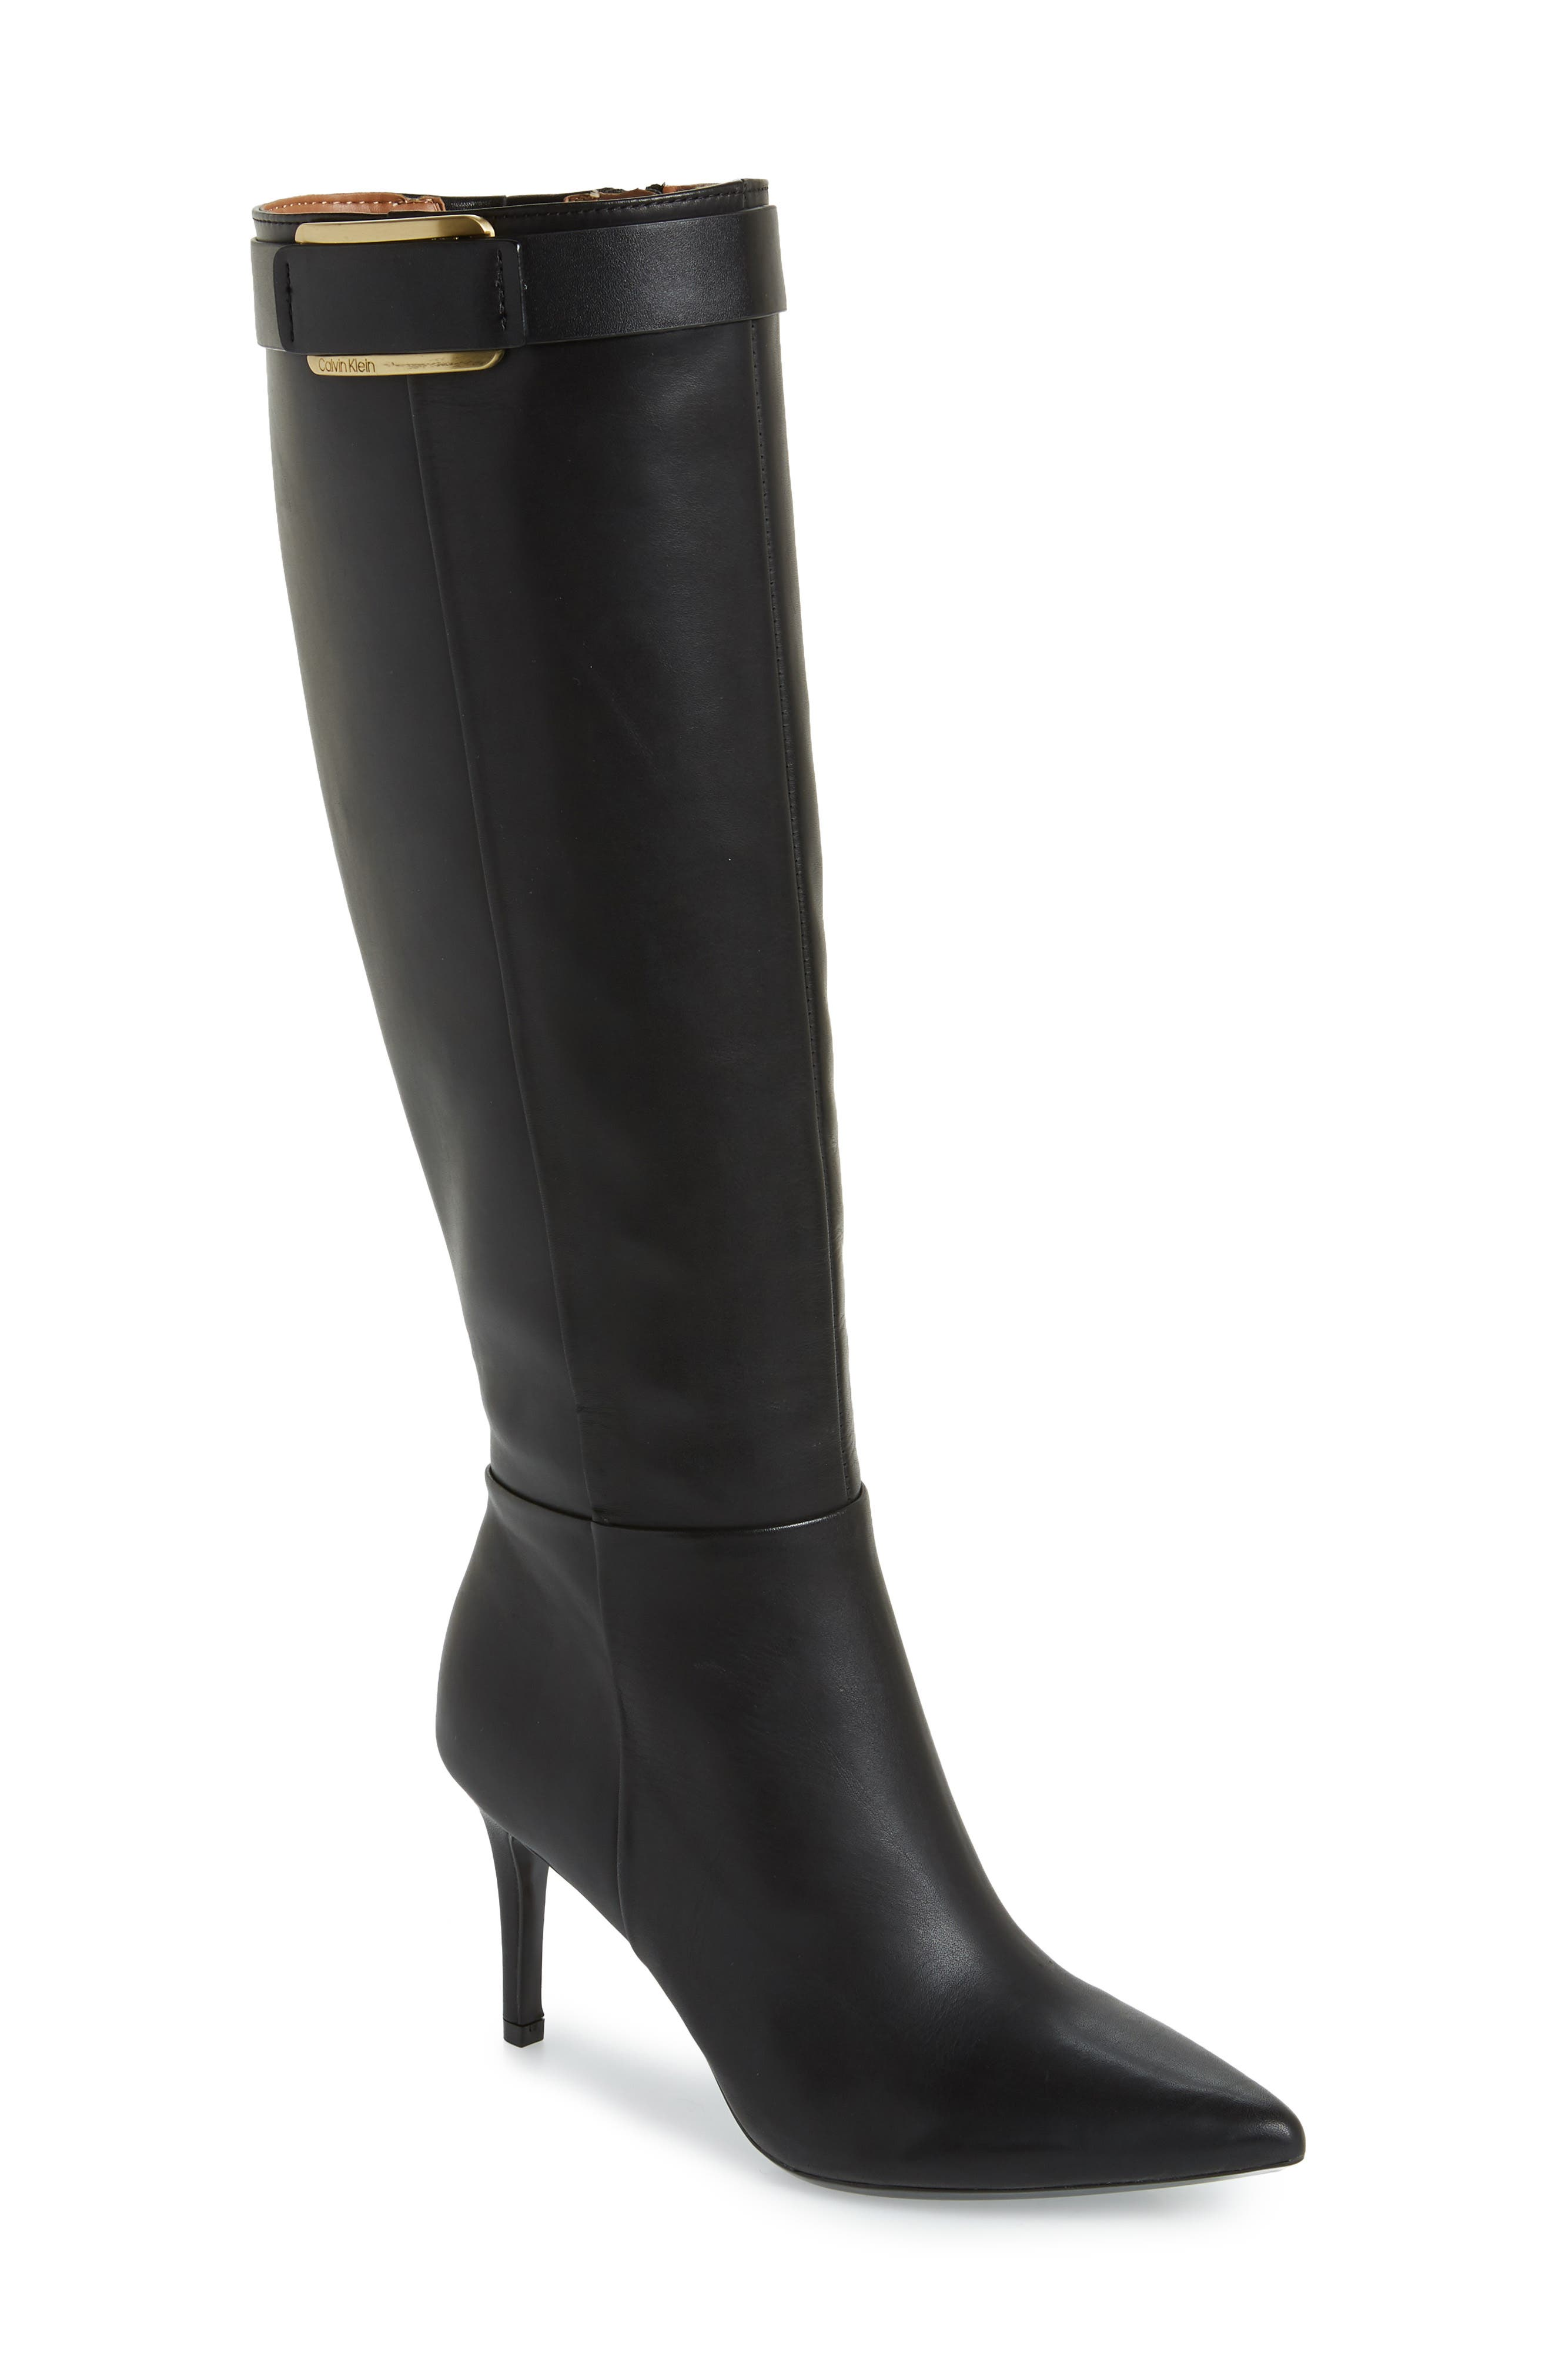 Sale   Damens's Stiefel & Booties   Sale Nordstrom 86c37a